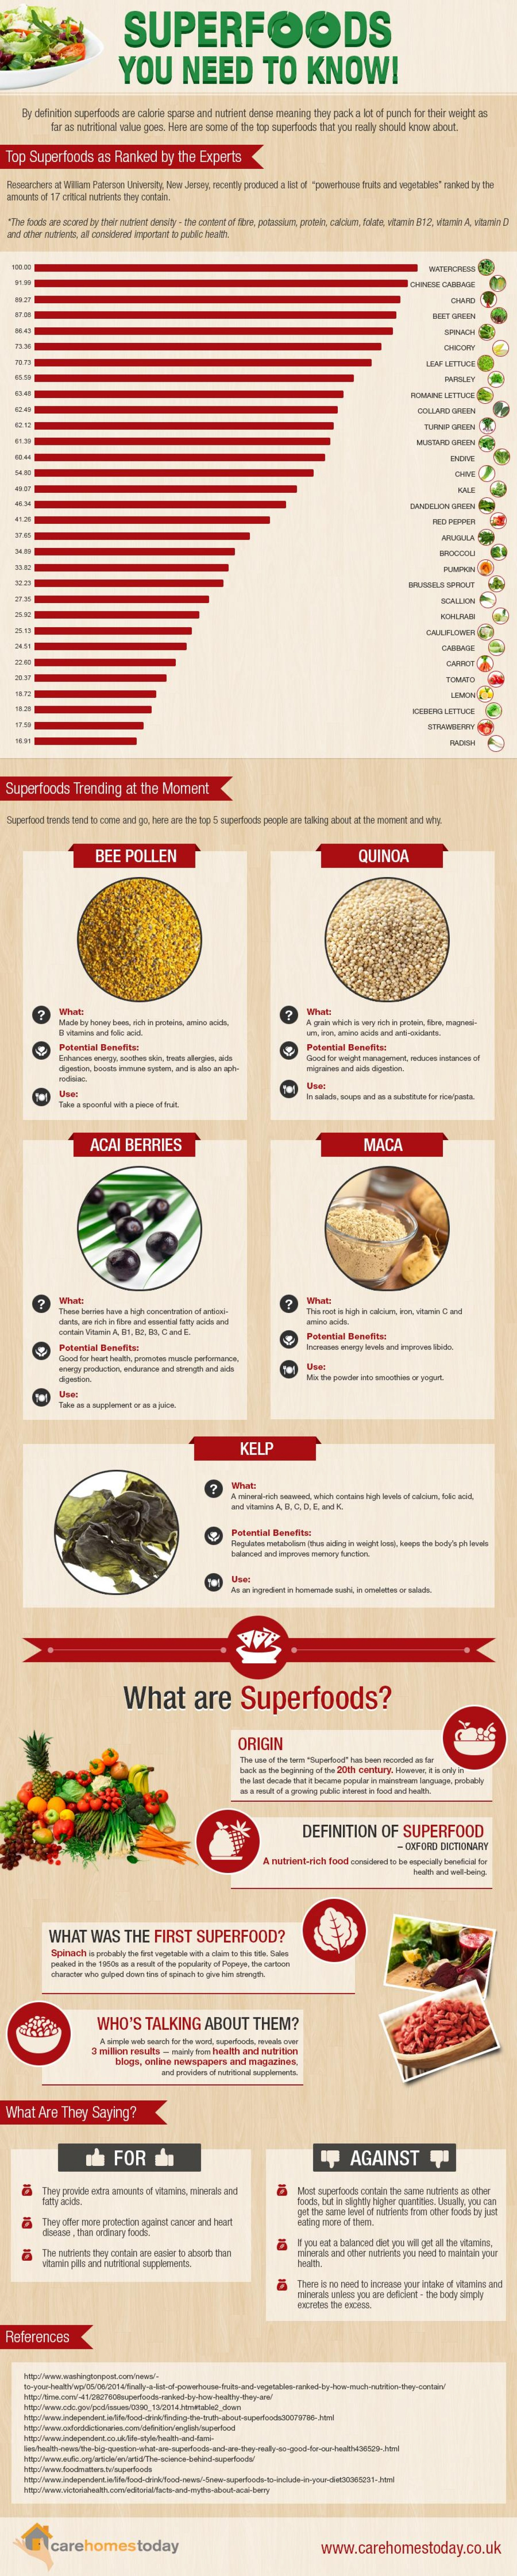 Superfoods You Need To Know